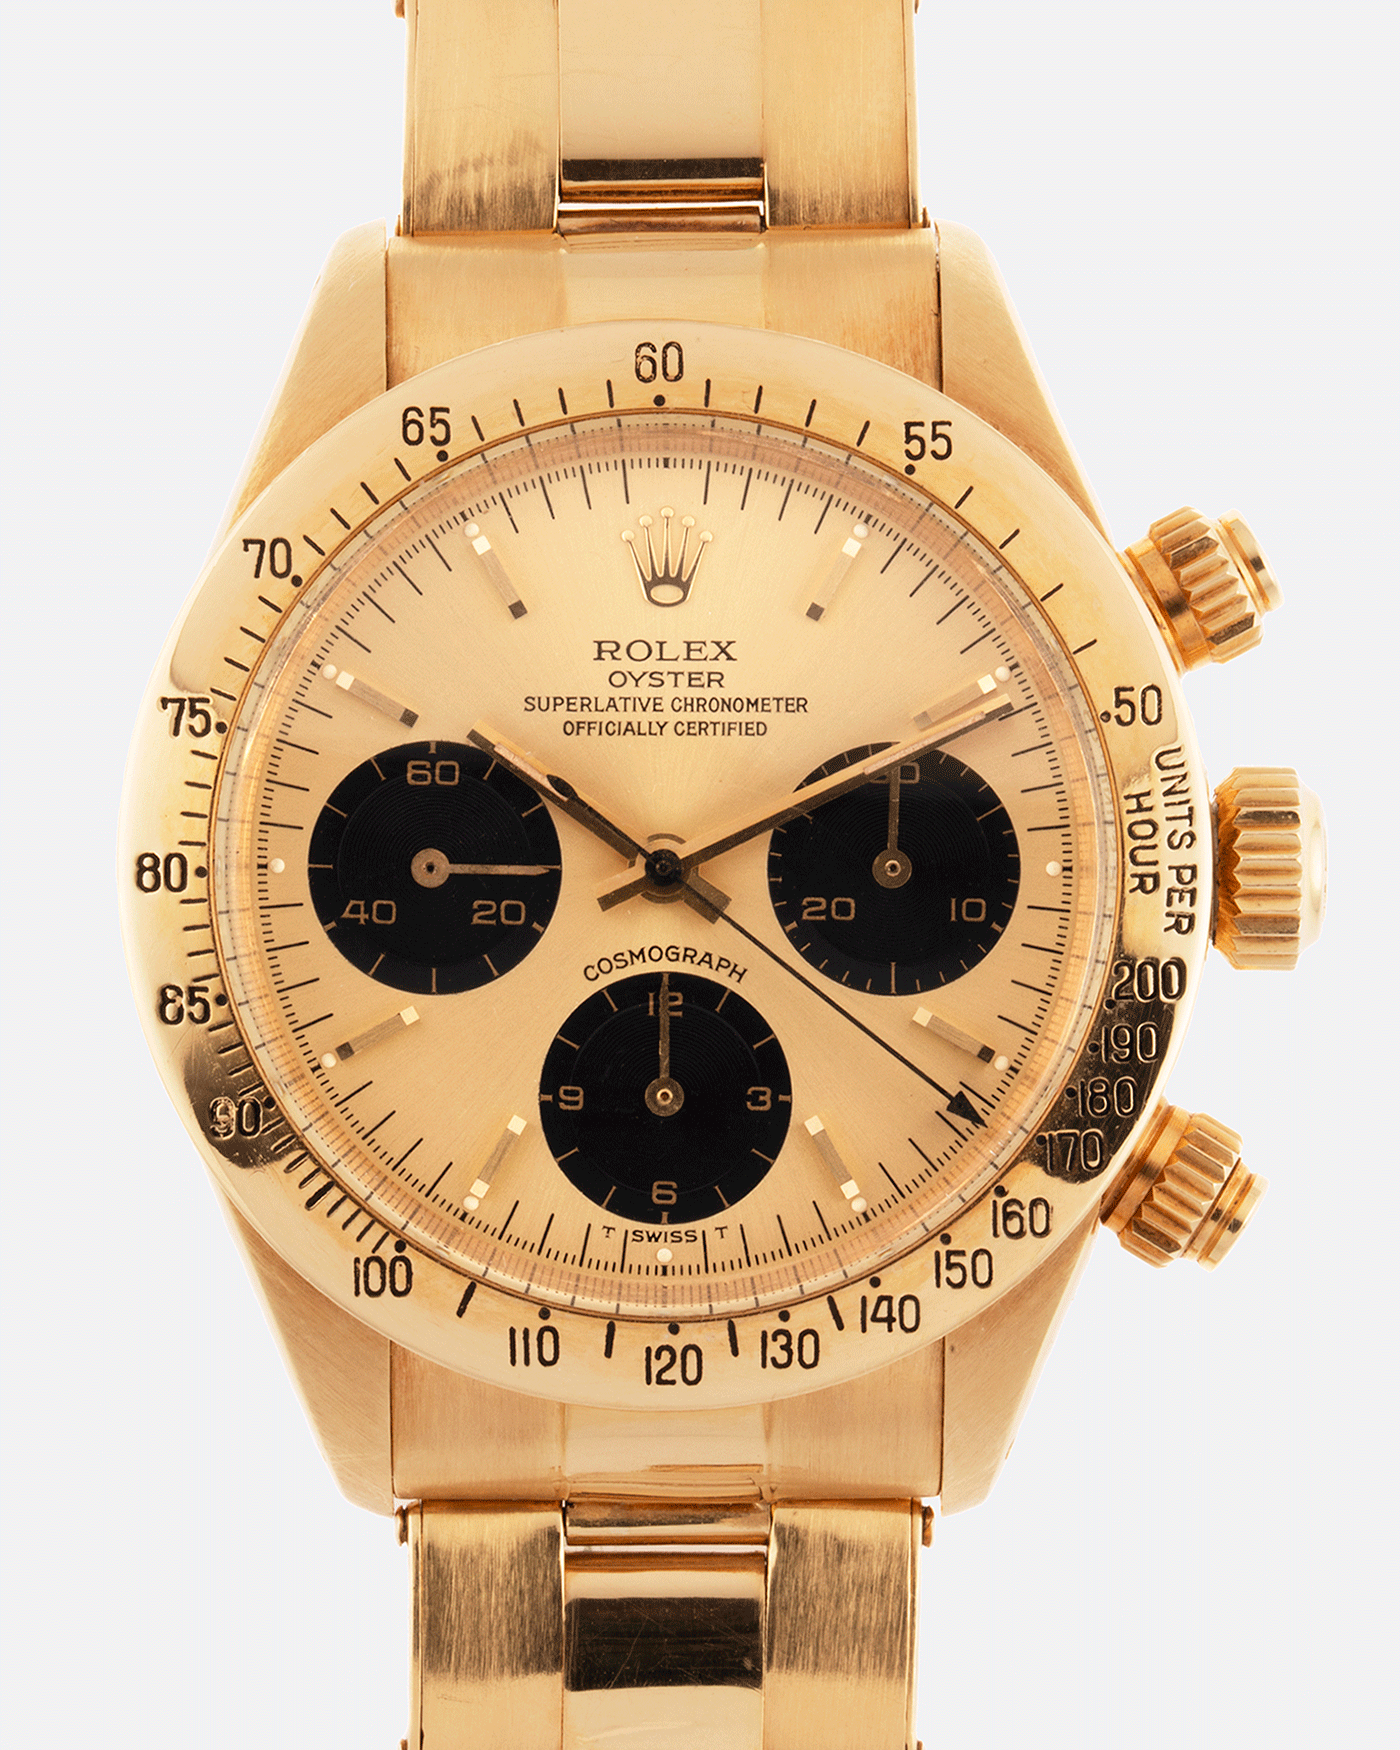 Rolex Cosmograph Daytona 6265 Vintage Yellow Gold Chronograph Watch | S.Song Vintage Timepieces "|1400|1750|?|1ae571b7f5044bb7e7210b261fef2c8f|False|UNLIKELY|0.35173970460891724